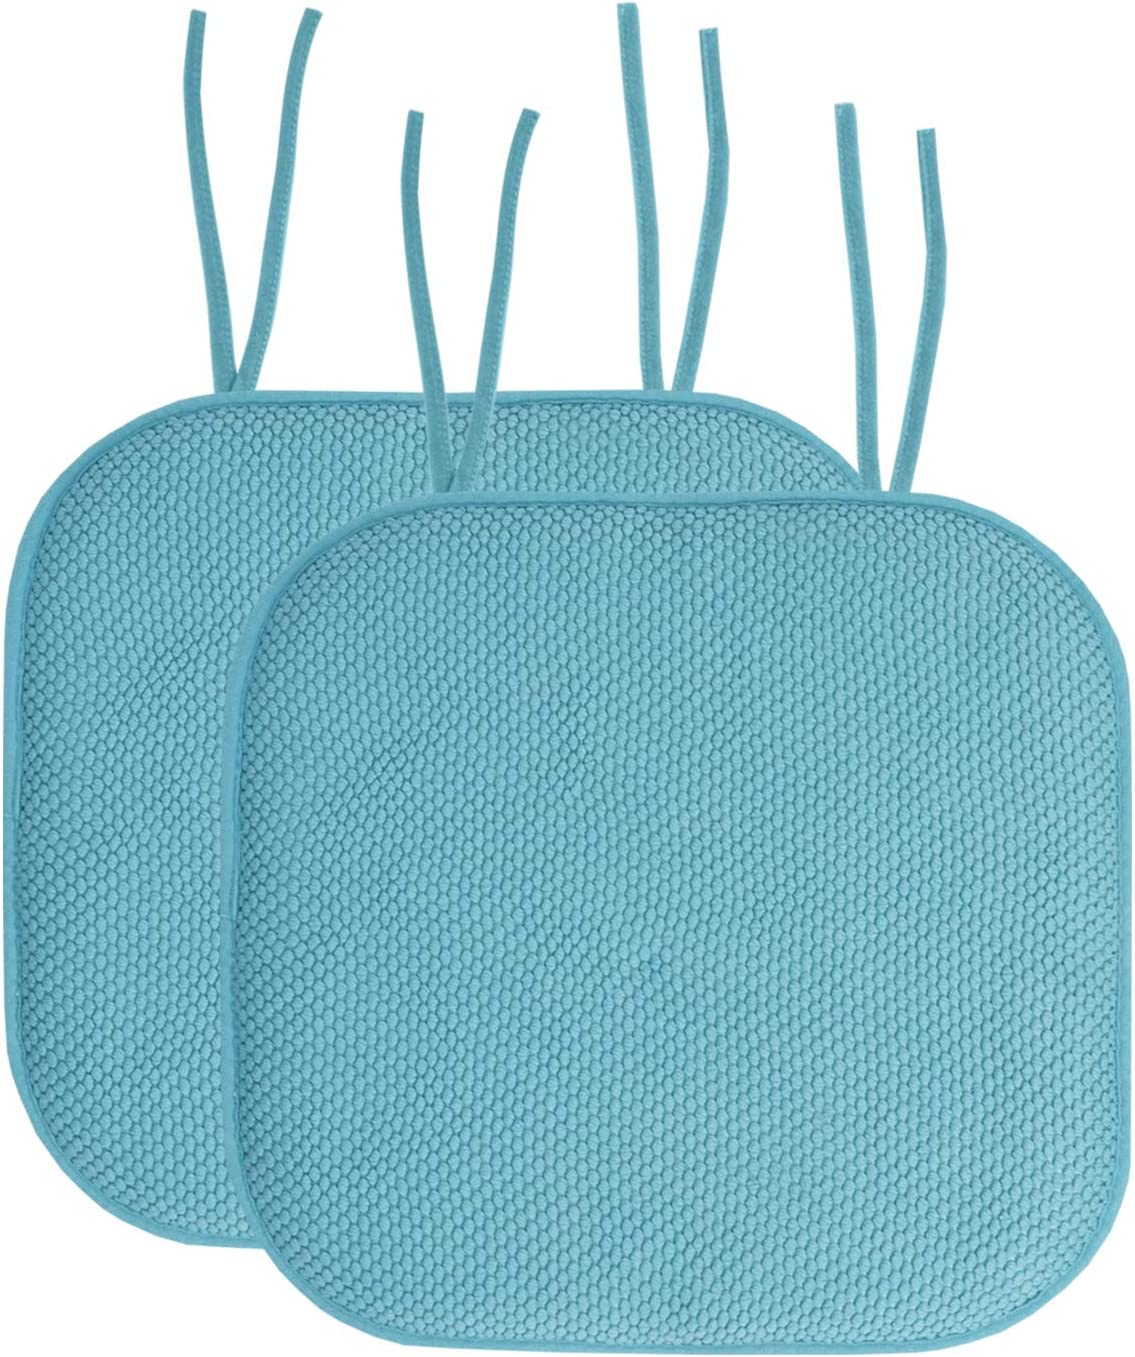 """Sweet Home Collection Chair Cushion Memory Foam Pads with Ties Honeycomb Pattern Slip Non Skid Rubber Back Rounded Square 16"""" x 16"""" Seat Cover, 2 Pack, Teal"""